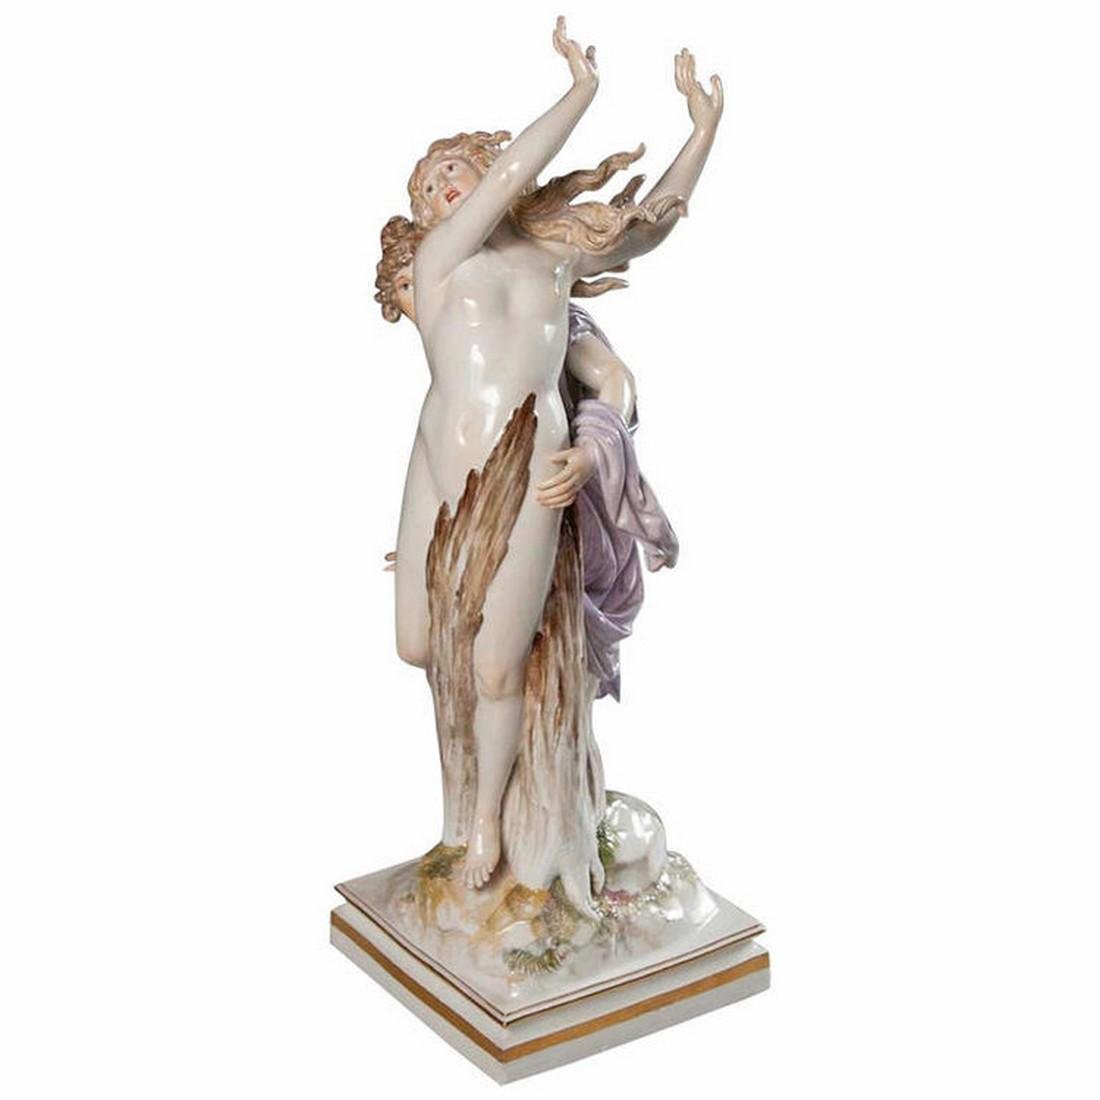 Antique Meissen Porcelain Figure of Apollo & Daphne